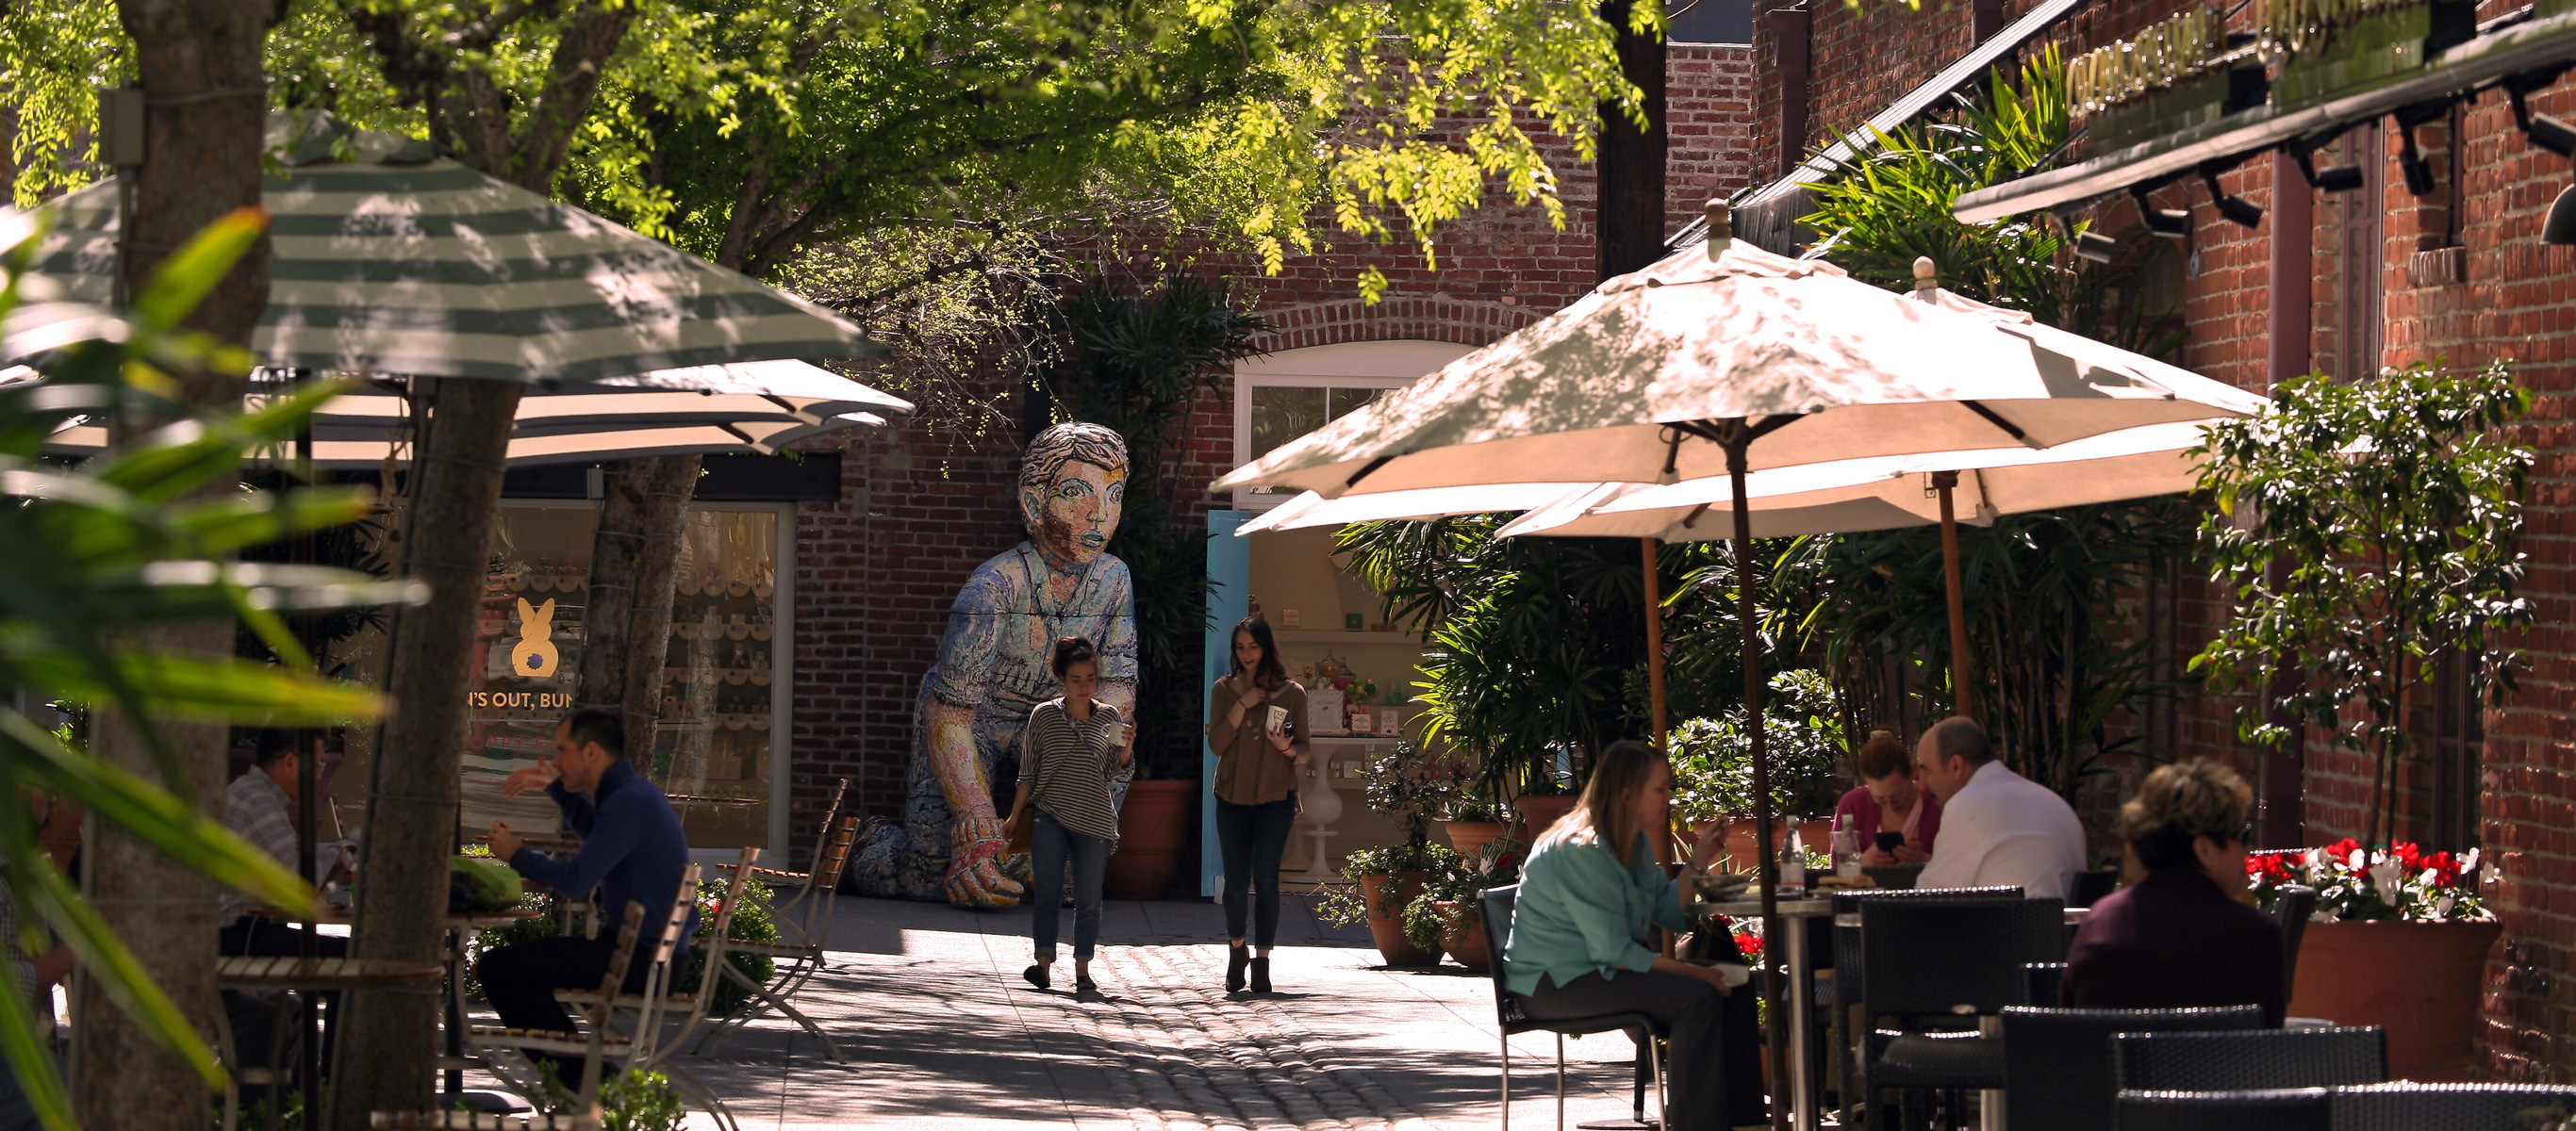 Stroll tree-lined sidewalks and quaint alleyways spanning 22 historic blocks